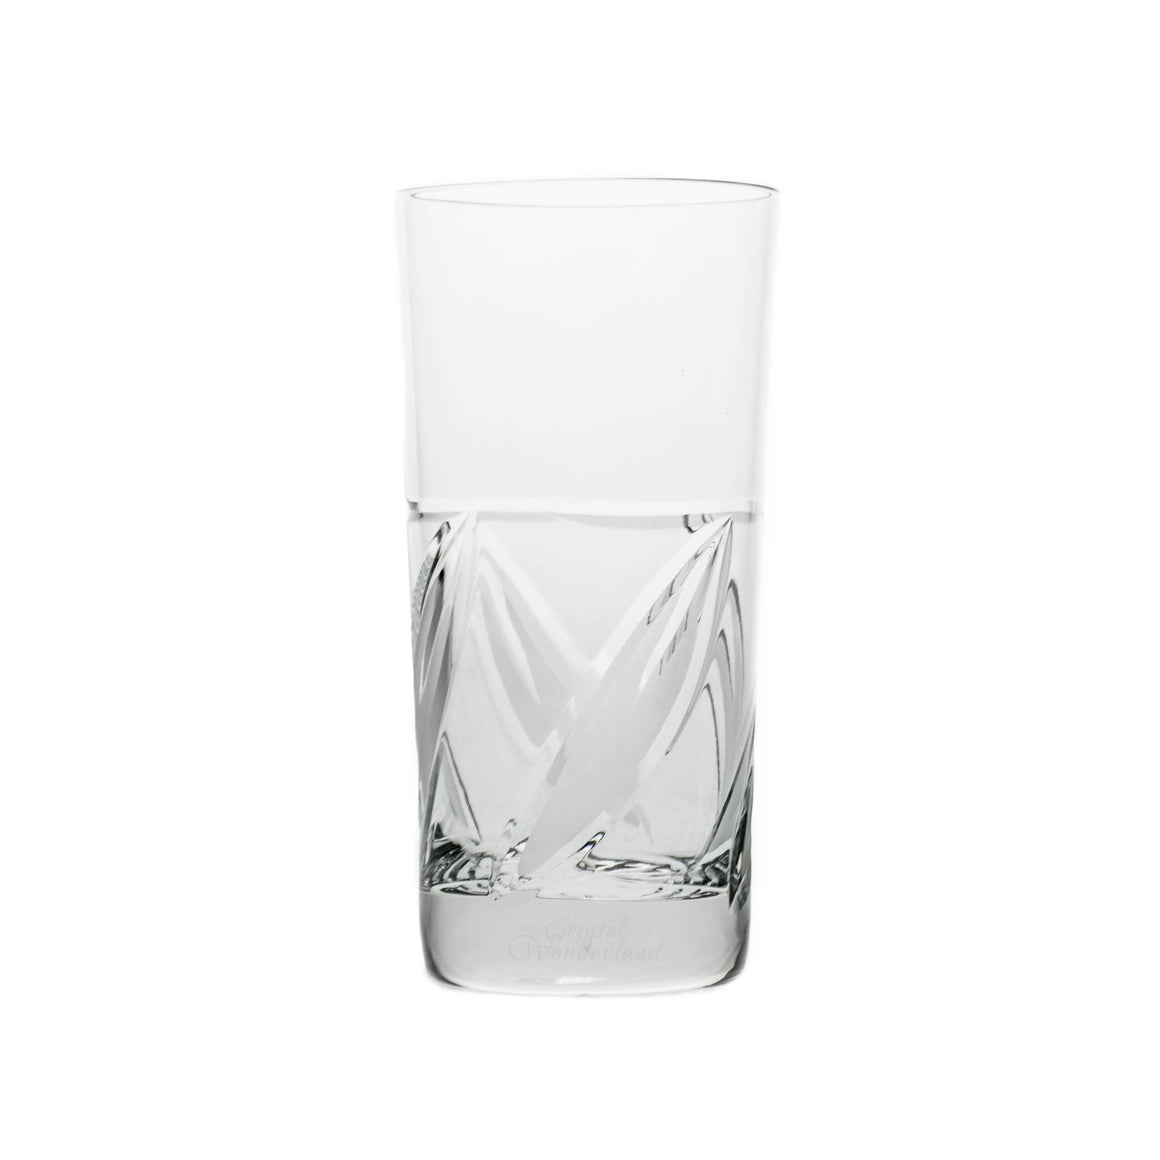 Crystal Leaves Beverage Glasses, Set of 6 - The Crystal Wonderland